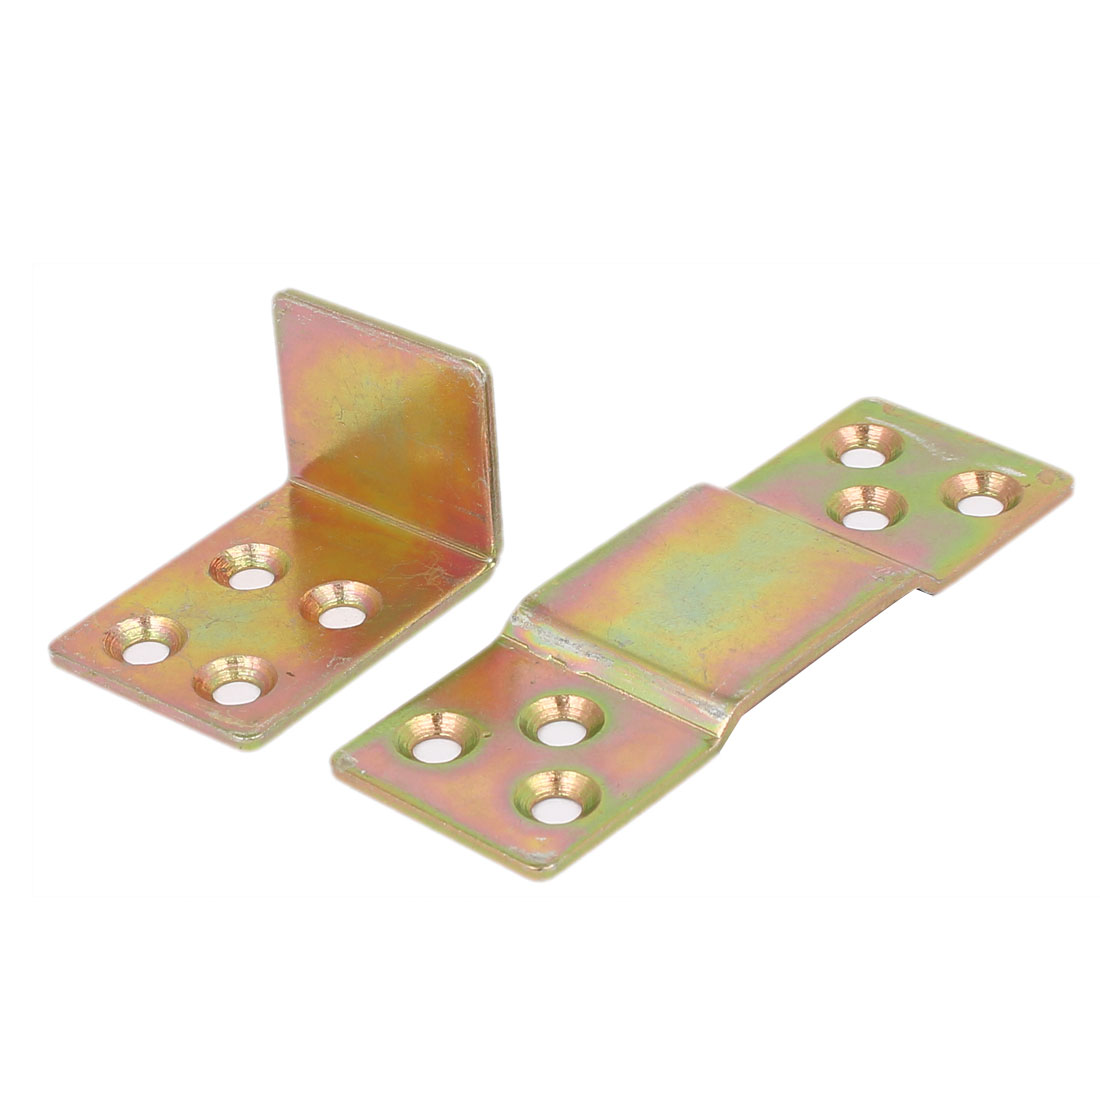 90mm x 40mm x 25mm Metal Bed Connection Hinge Furniture Buckle Bronze Tone